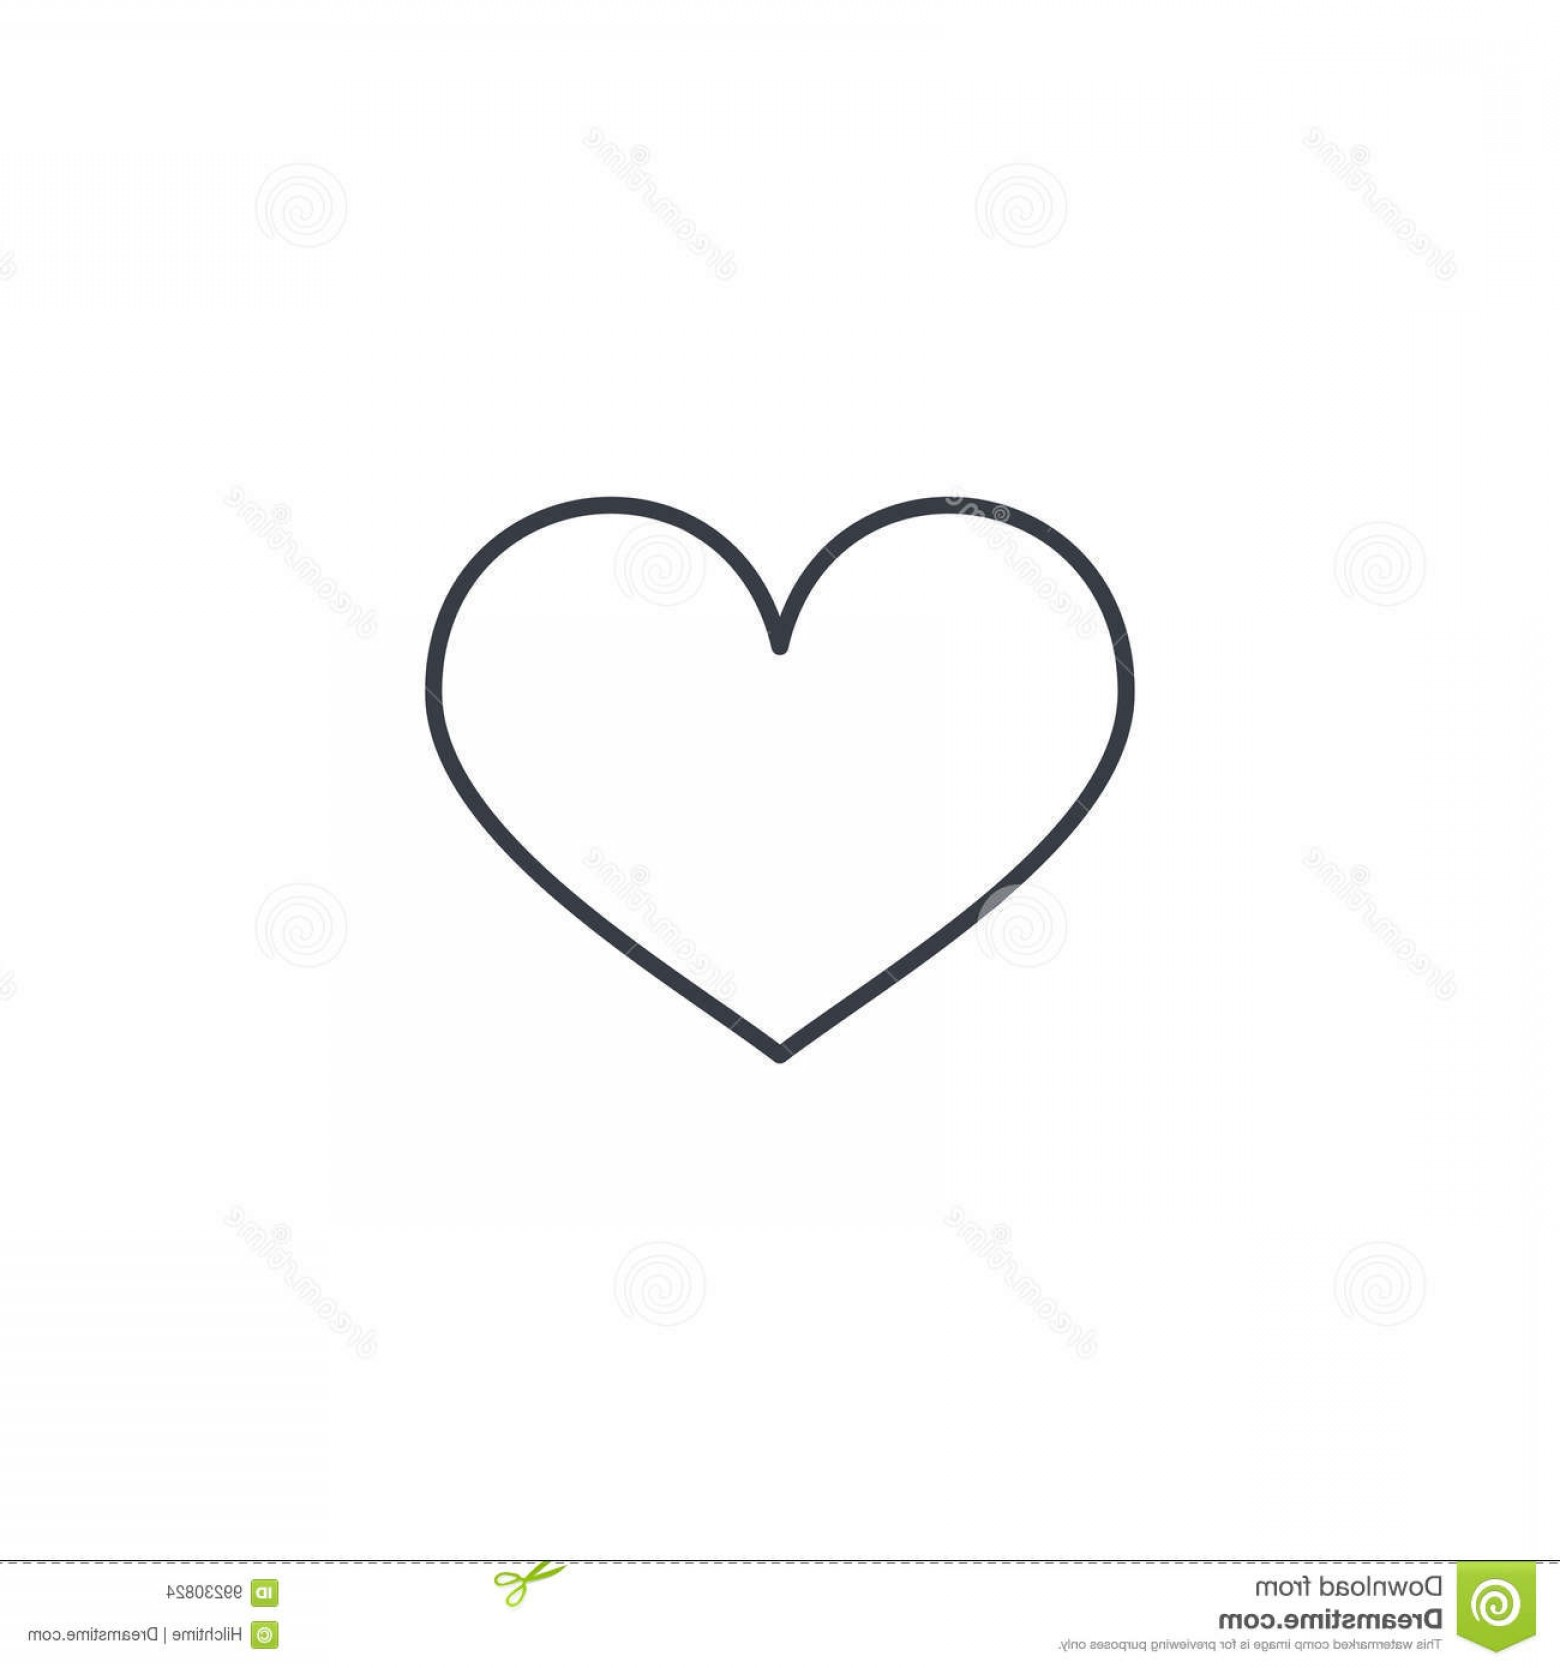 Solid Heart Vector Drawing: Stock Illustration Heart Shape Thin Line Icon Linear Vector Illustration Pictogram Isolated White Background Symbol Image